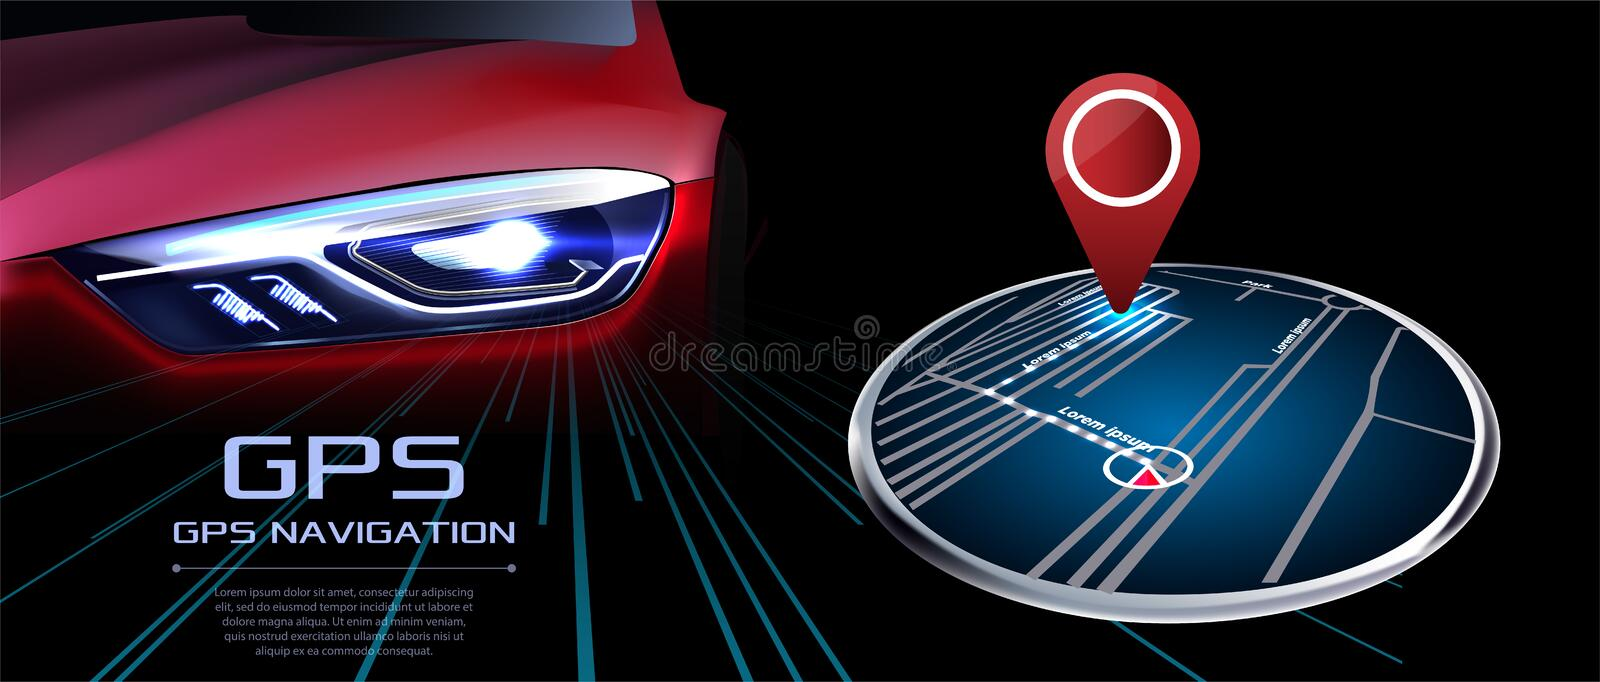 GPS navigator vector. Against the background of the red realistic car stock illustration